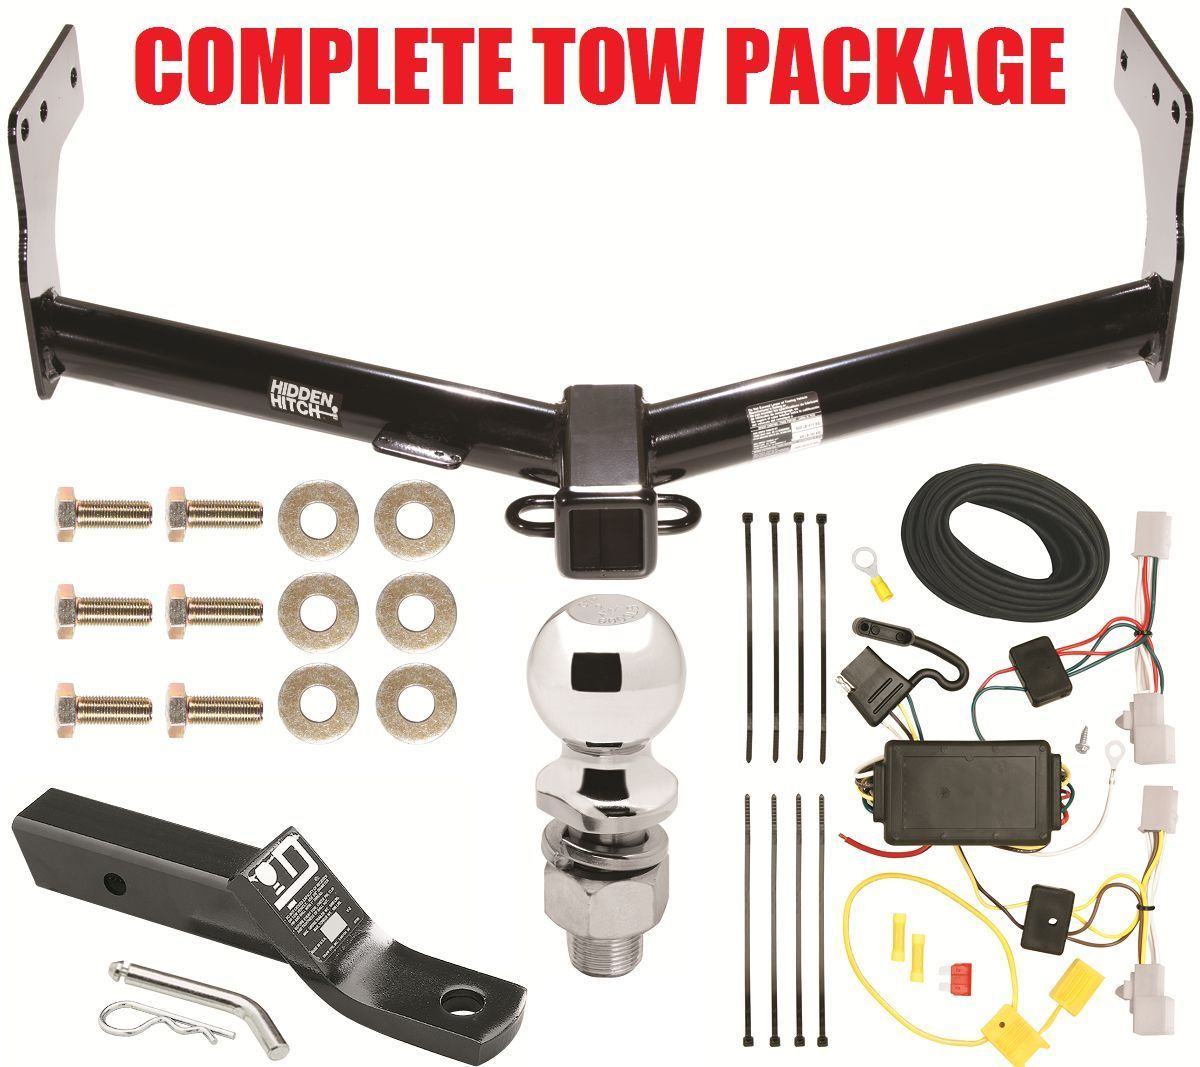 07 12 mazda cx 9 cx9 trailer hitch tow and 50 similar items